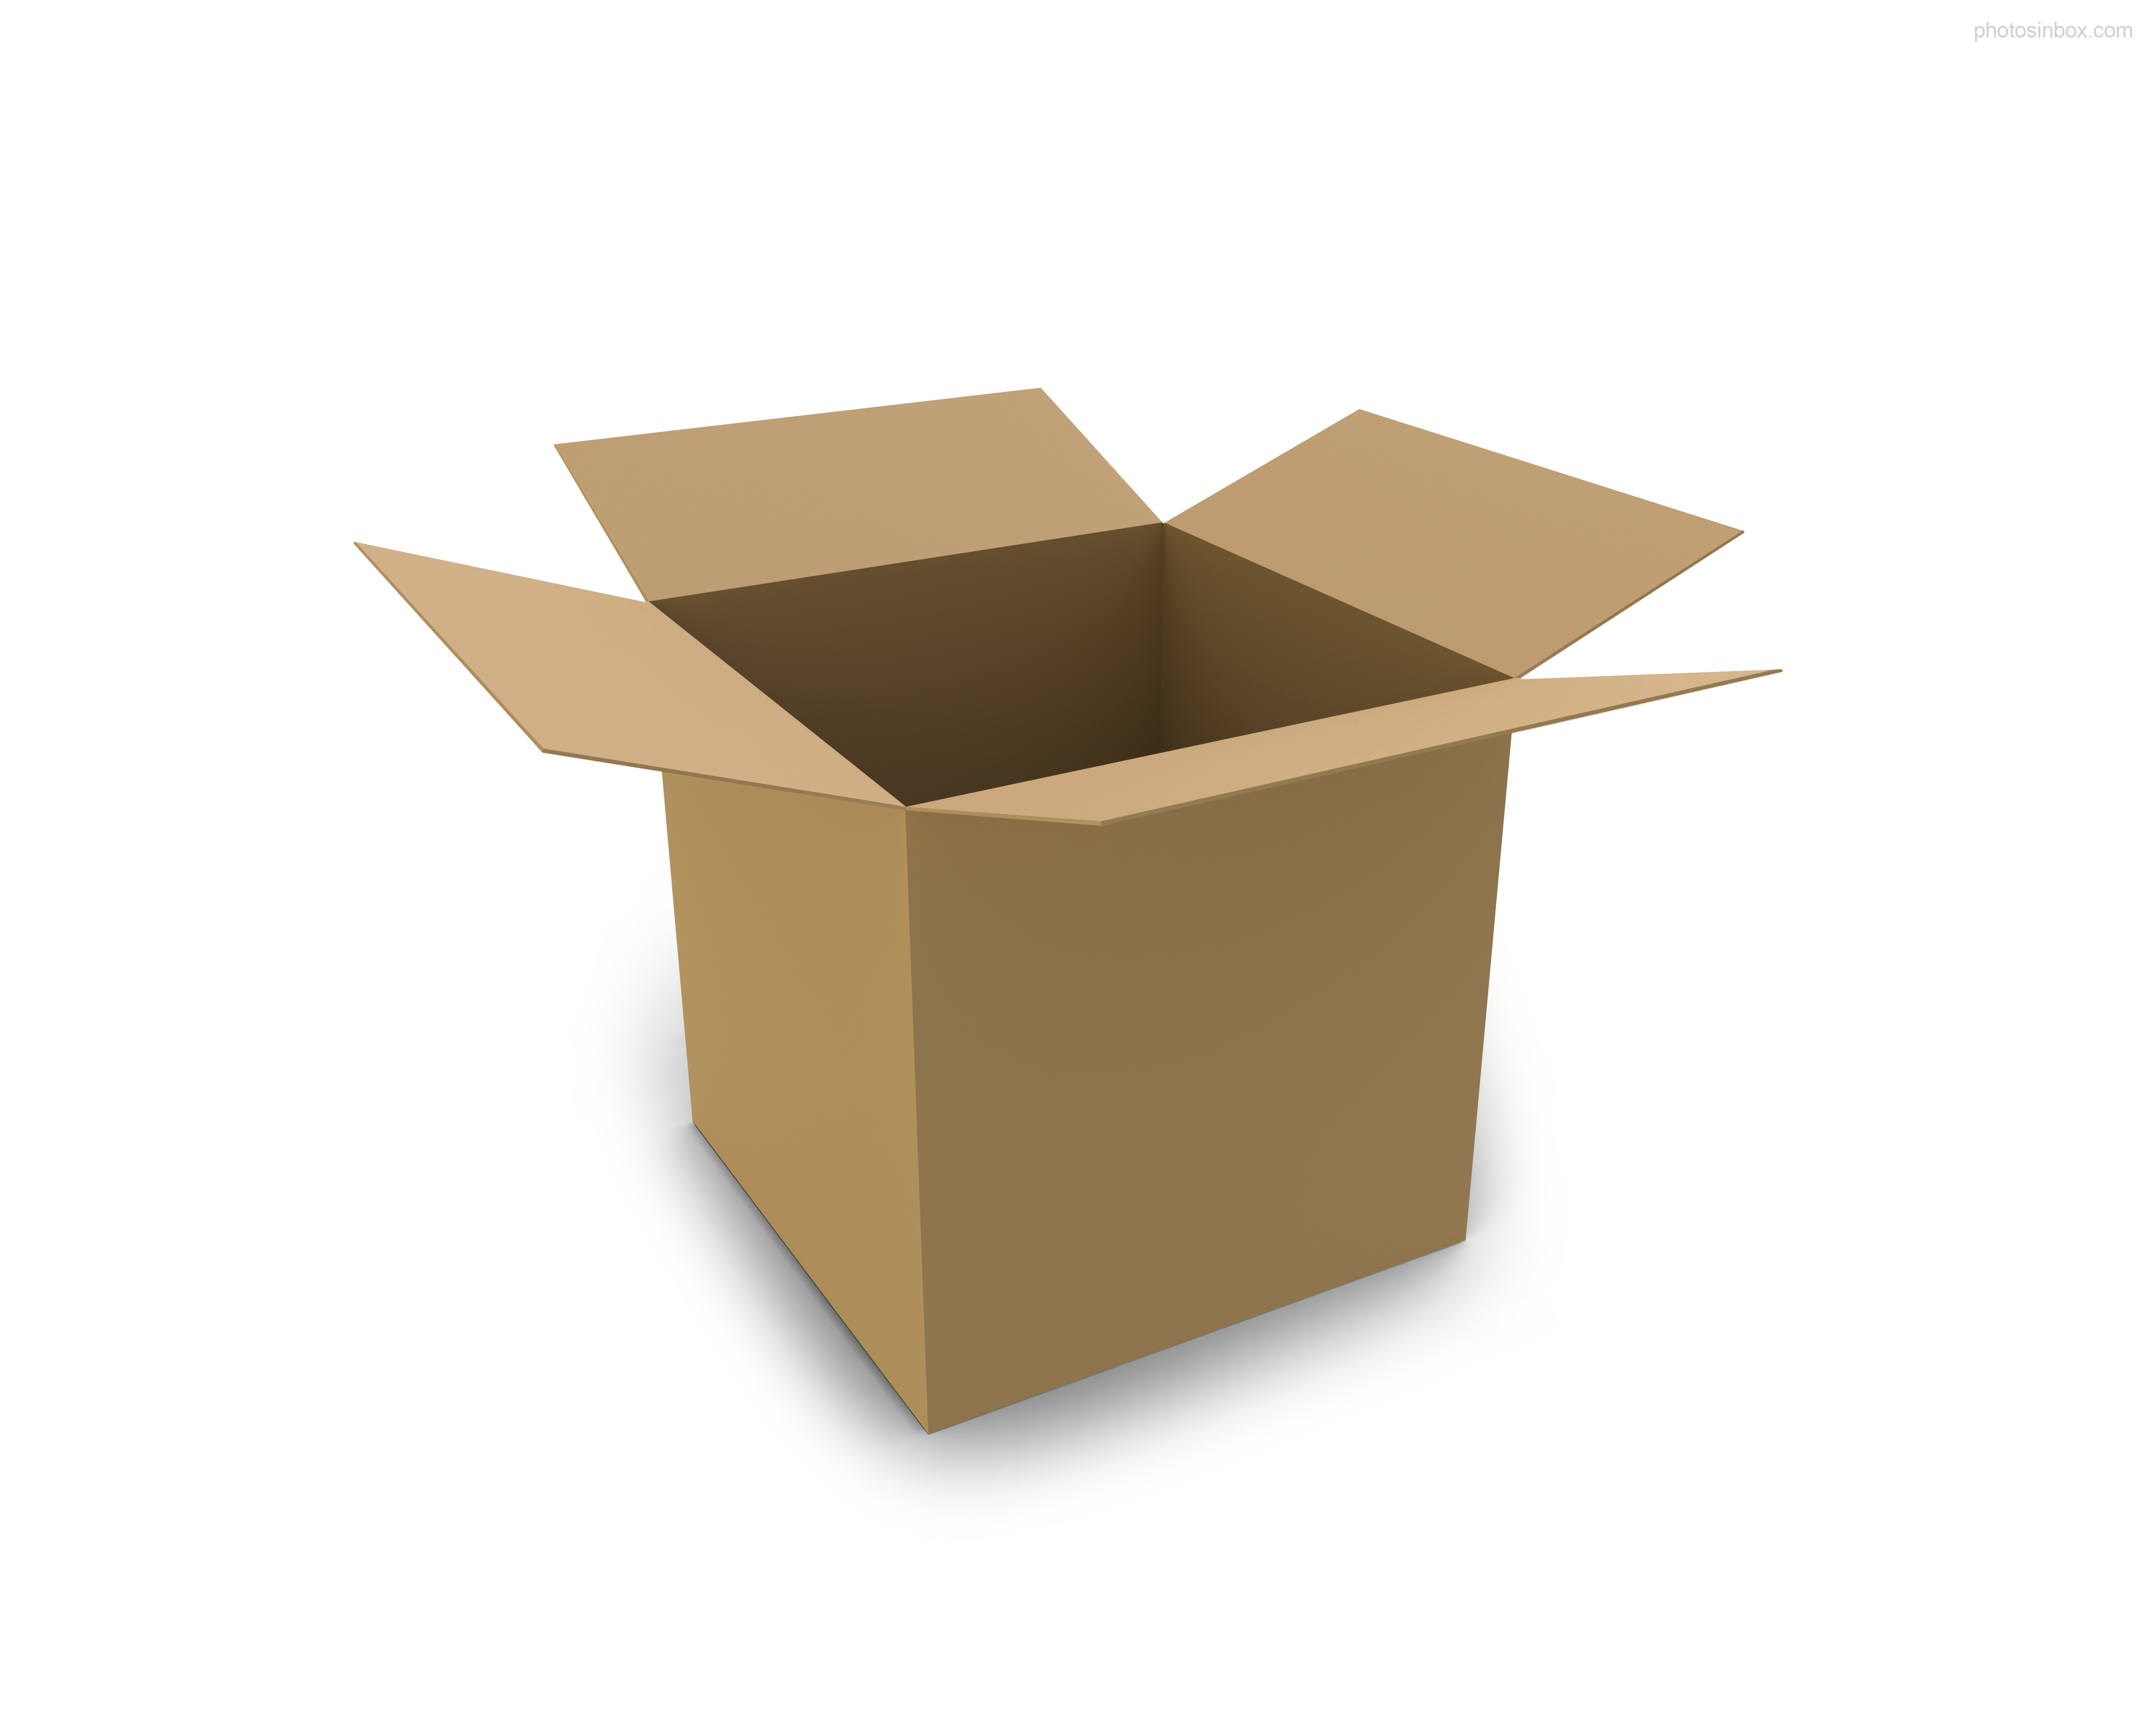 Box the meaning of the dream in which you see box box 11 photo biocorpaavc Choice Image